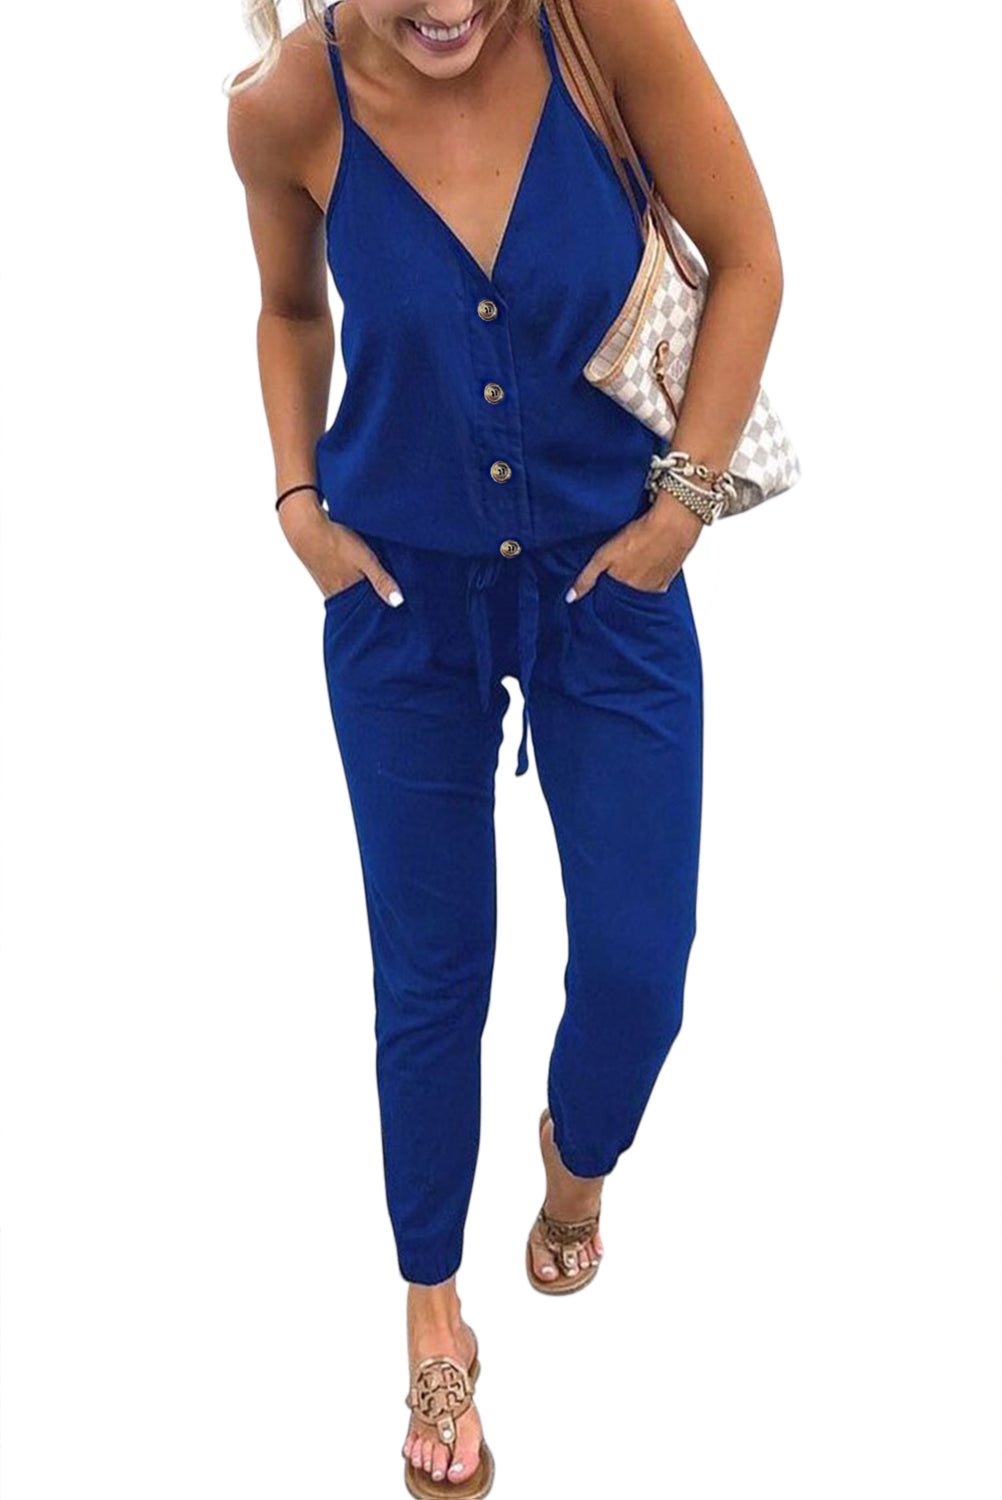 Blue Buttoned V Neck Sleeveless Jumpsuit